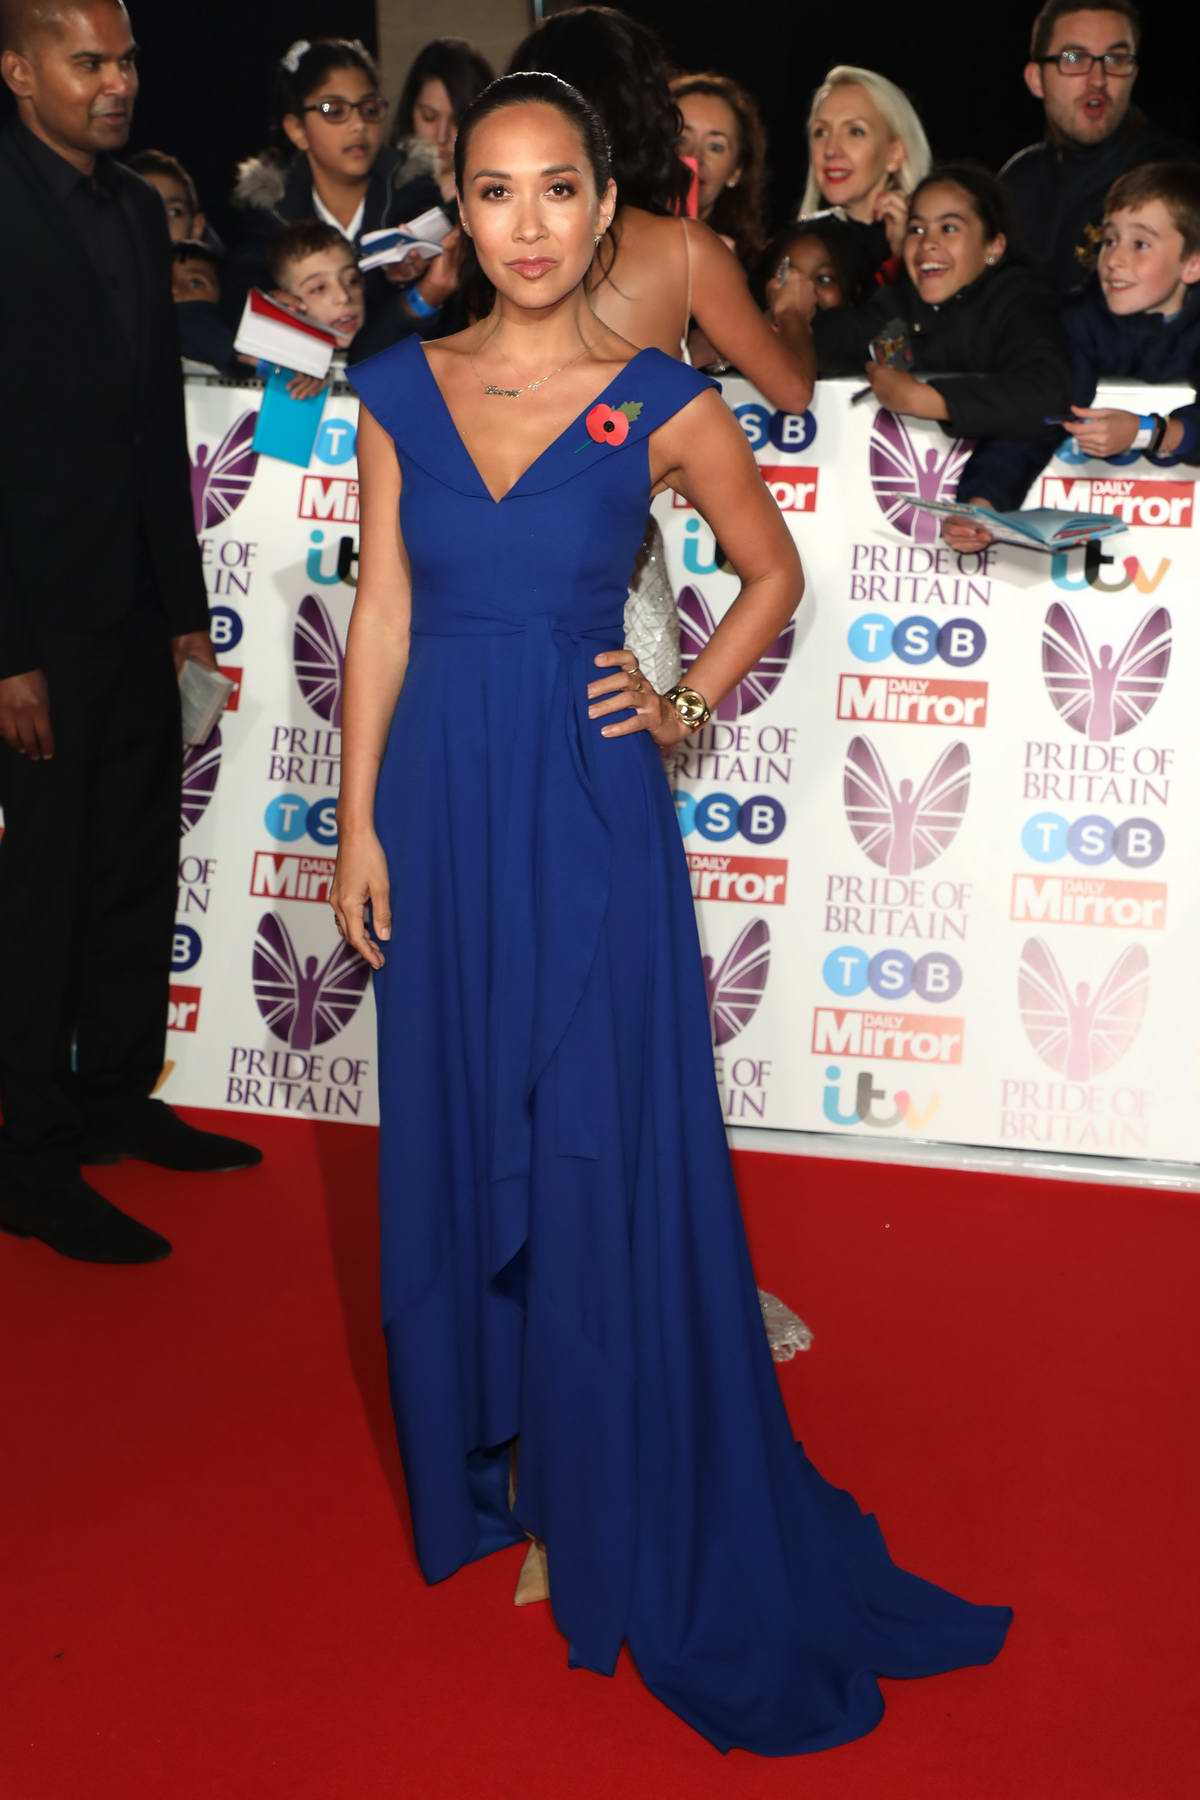 Myleene Klass at the Pride of Britain Awards held at the Grosvenor House in London